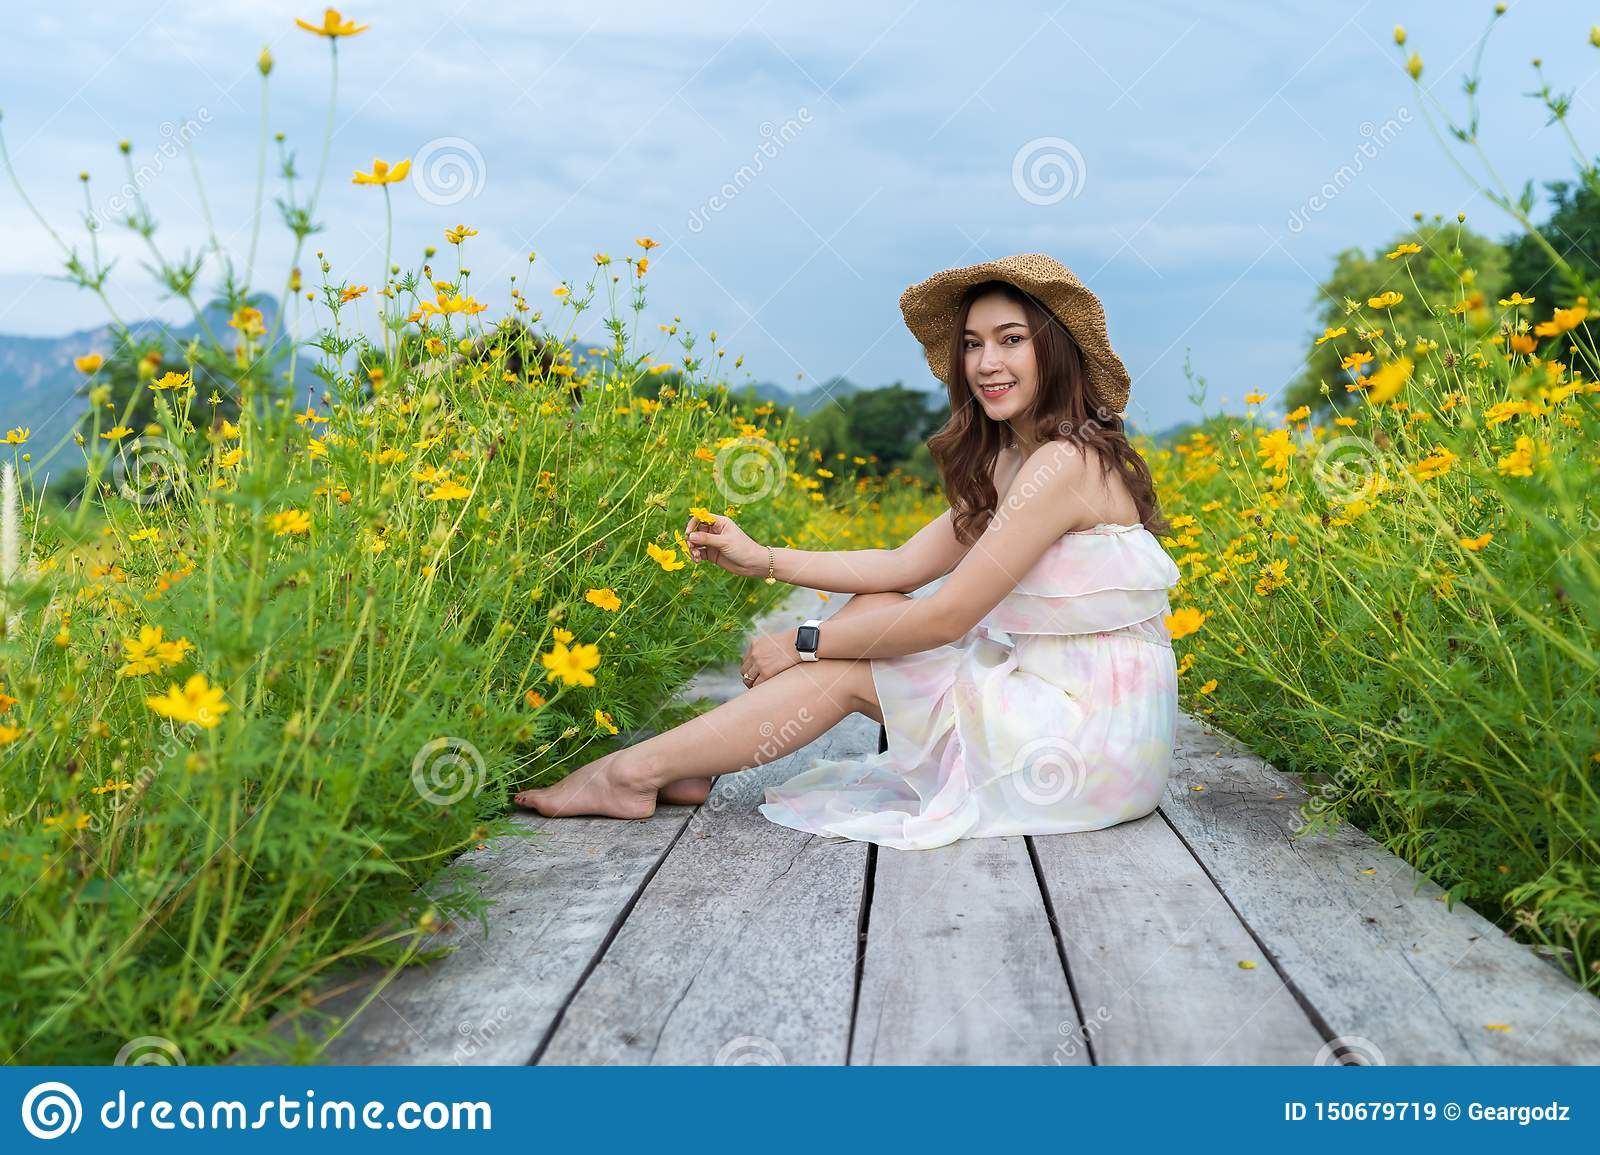 Woman sitting on wooden bridge with yellow cosmos flower field